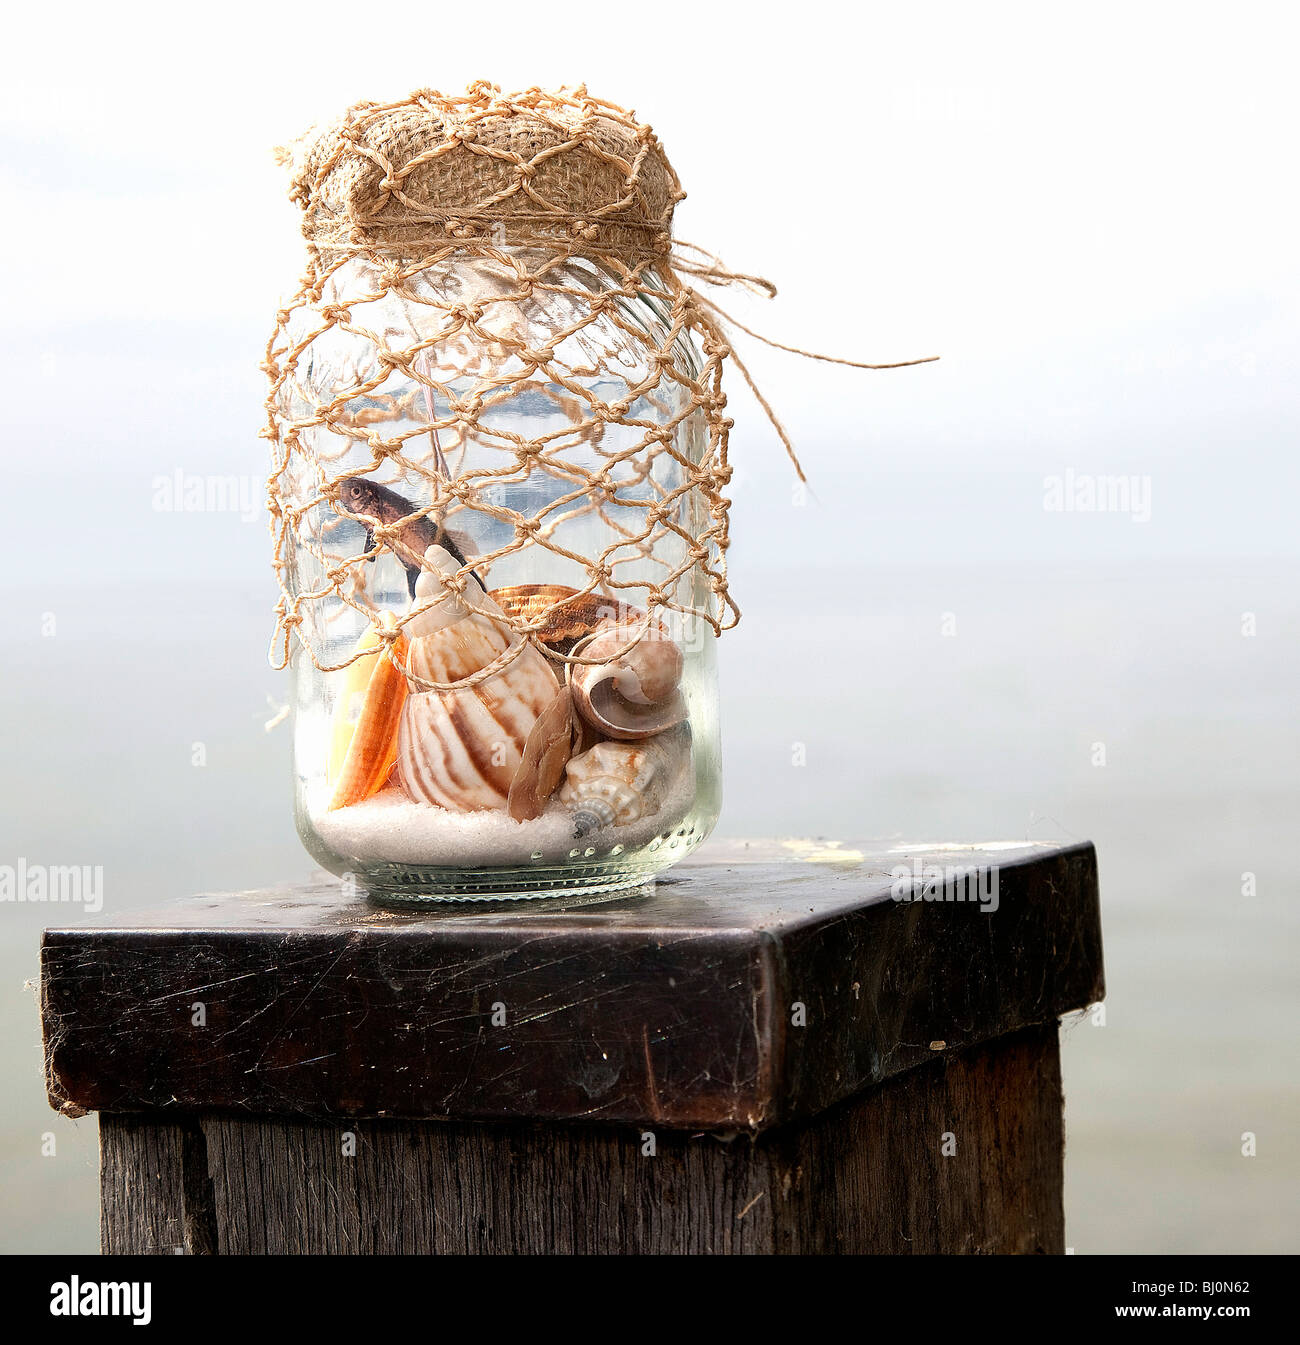 shells in jar on pole by the sea - Stock Image